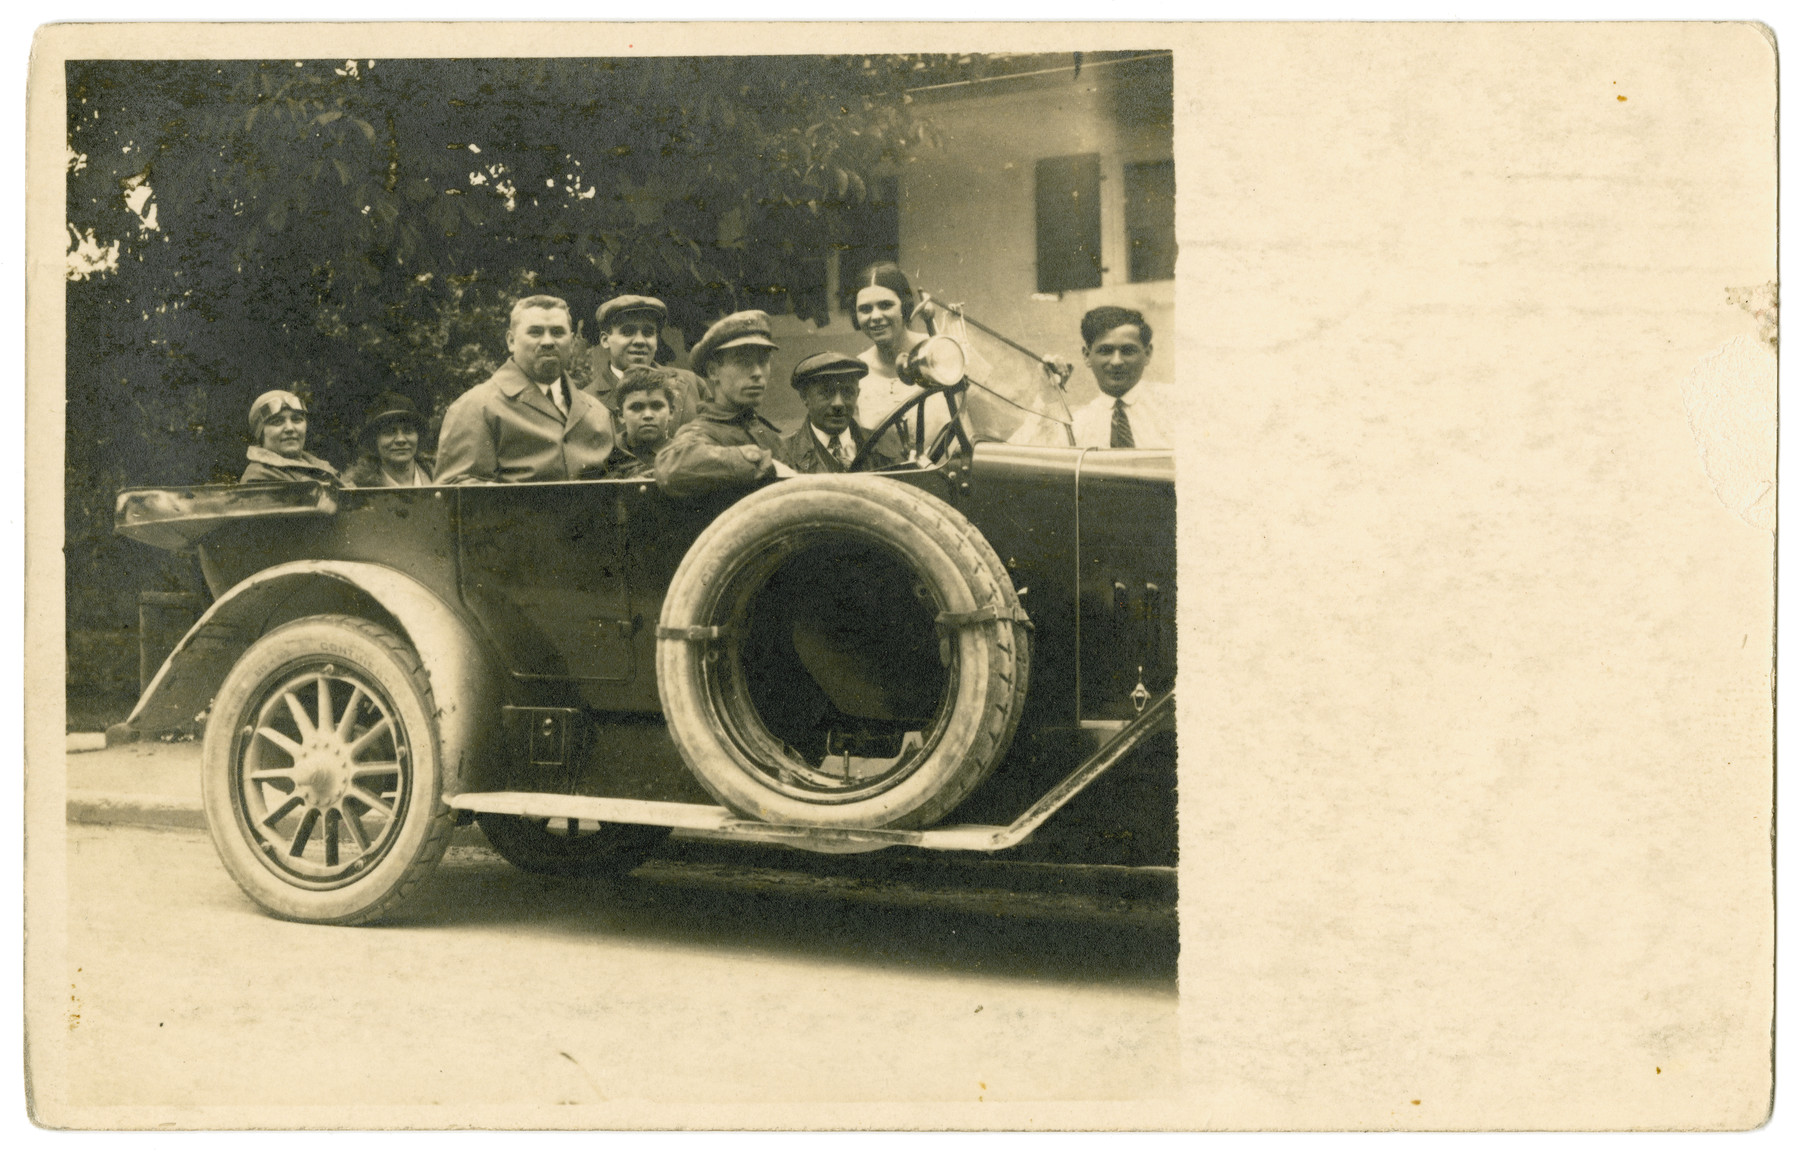 The Landman family goes for a car ride in its first automobile.